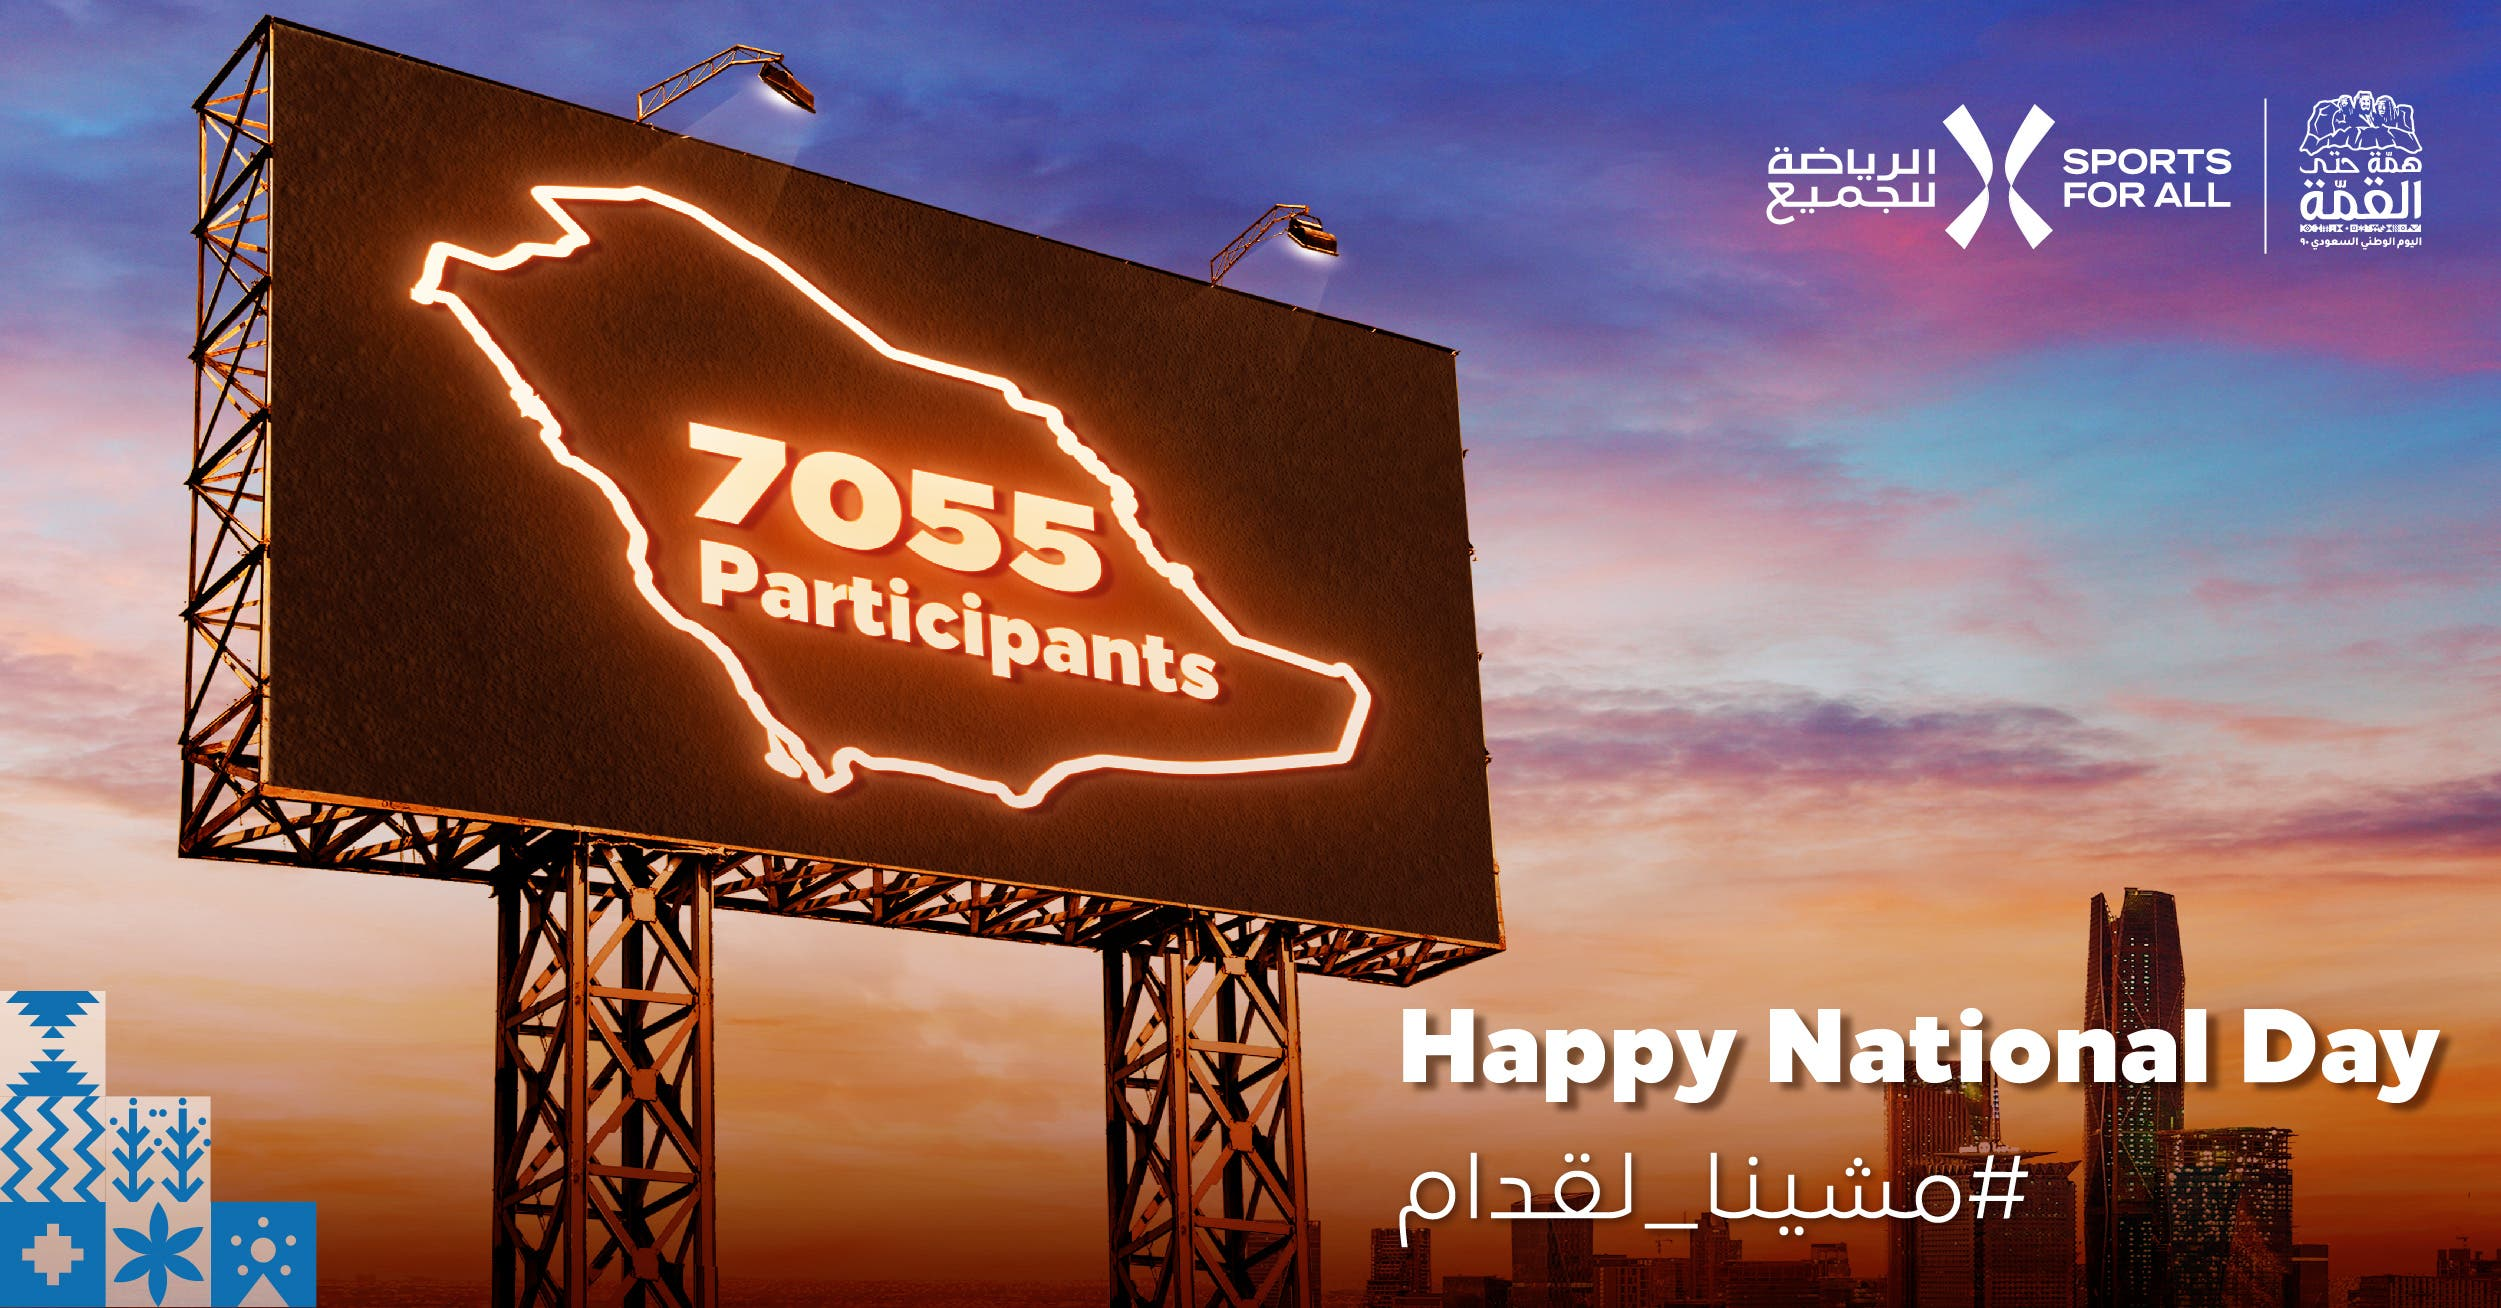 Saudi National Day by Sports for All Federation. (Supplied)